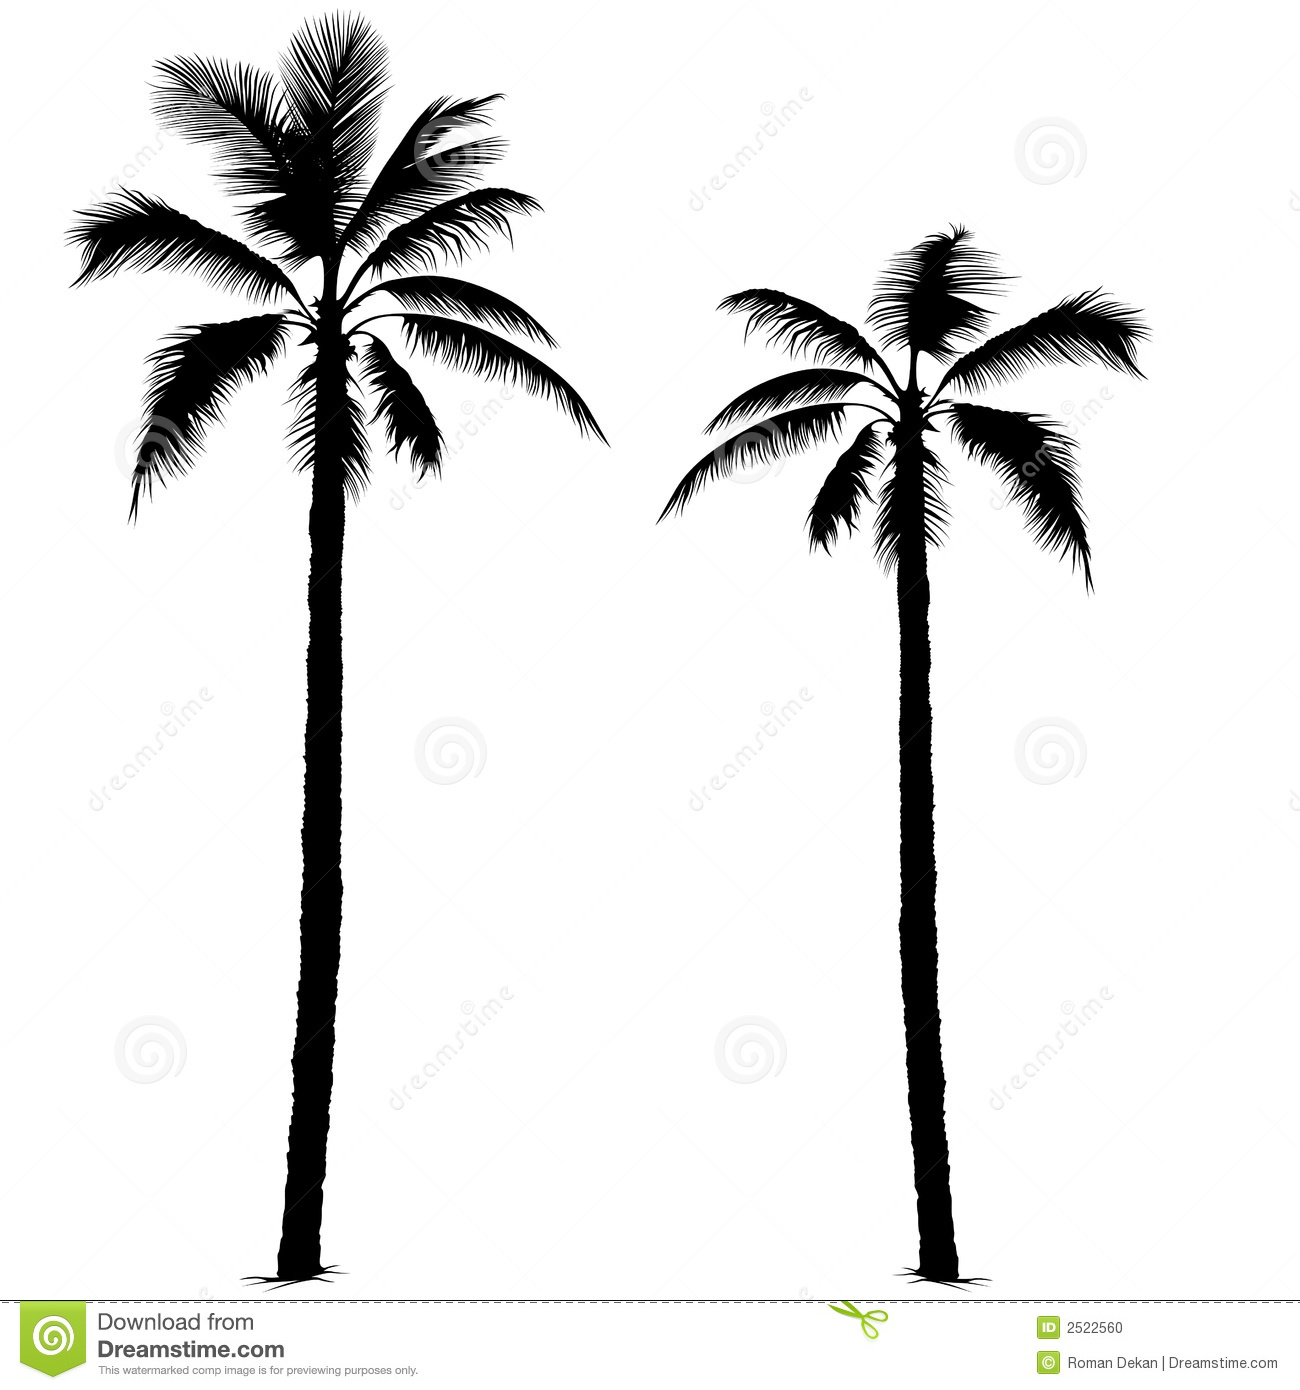 Palm Tree Silhouette Clipart Panda Free Clipart Images